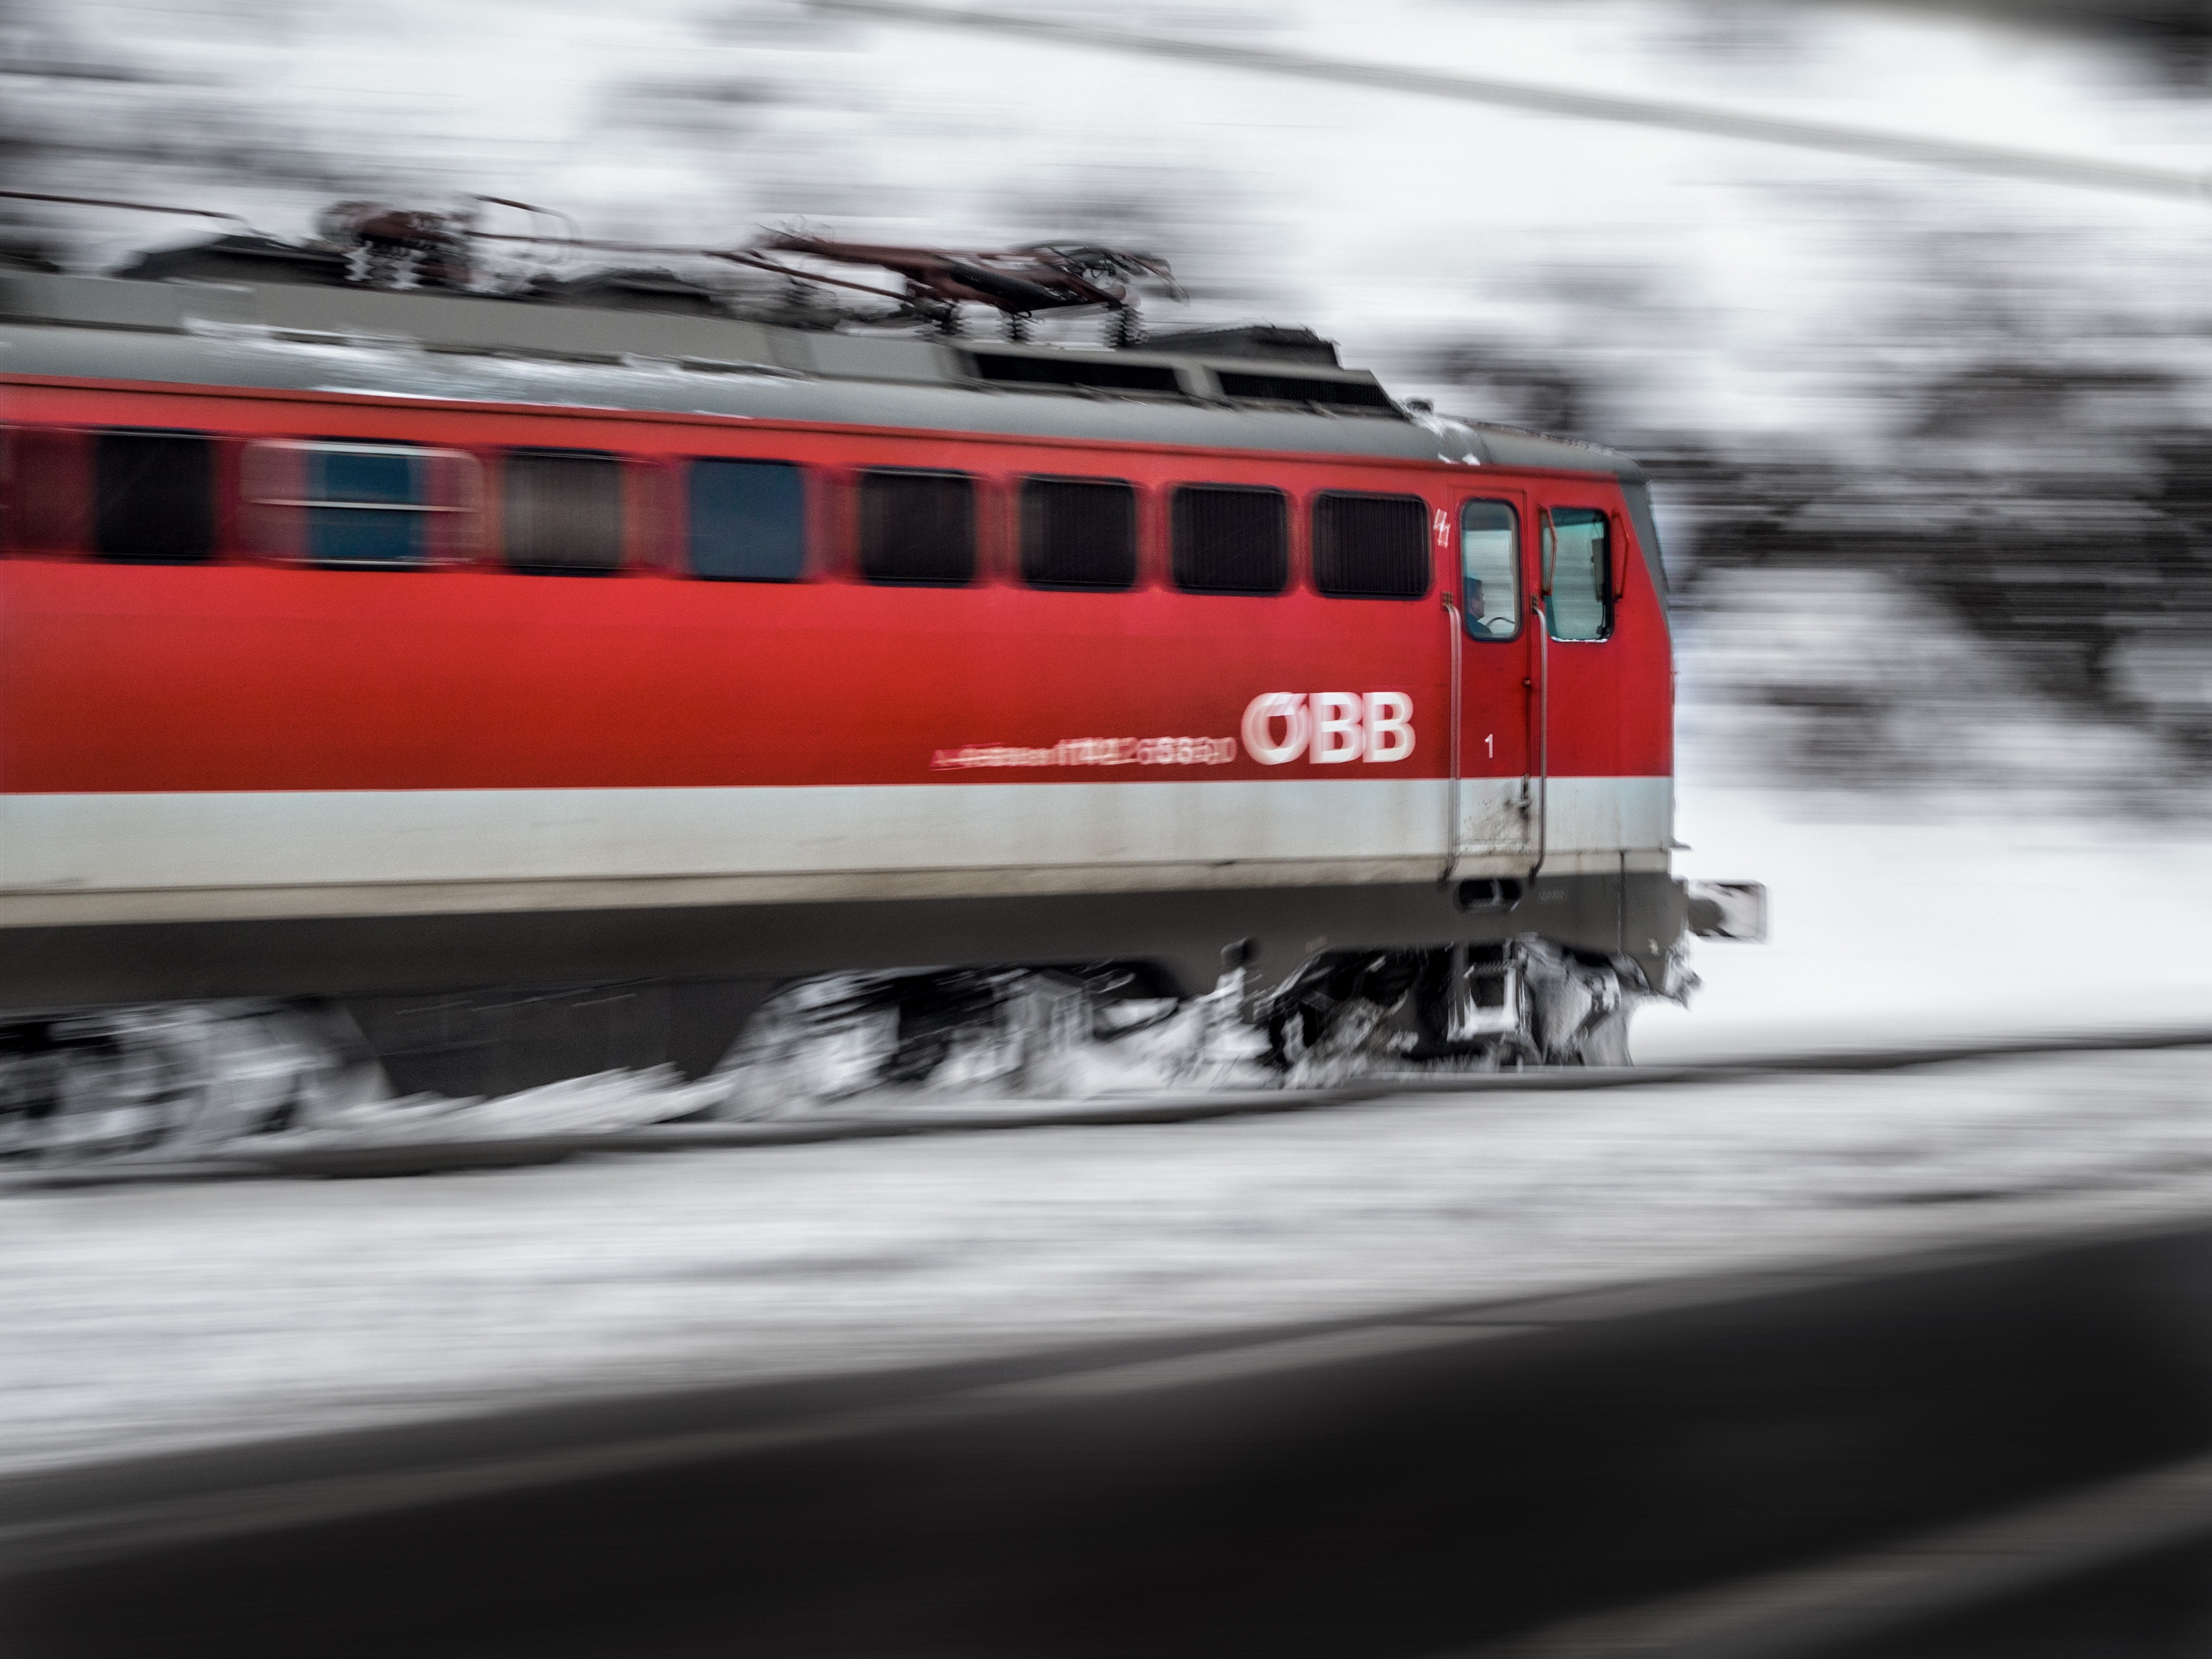 Timelapse Photography of Red Train, Blur, Road, Vehicle, Travel, HQ Photo